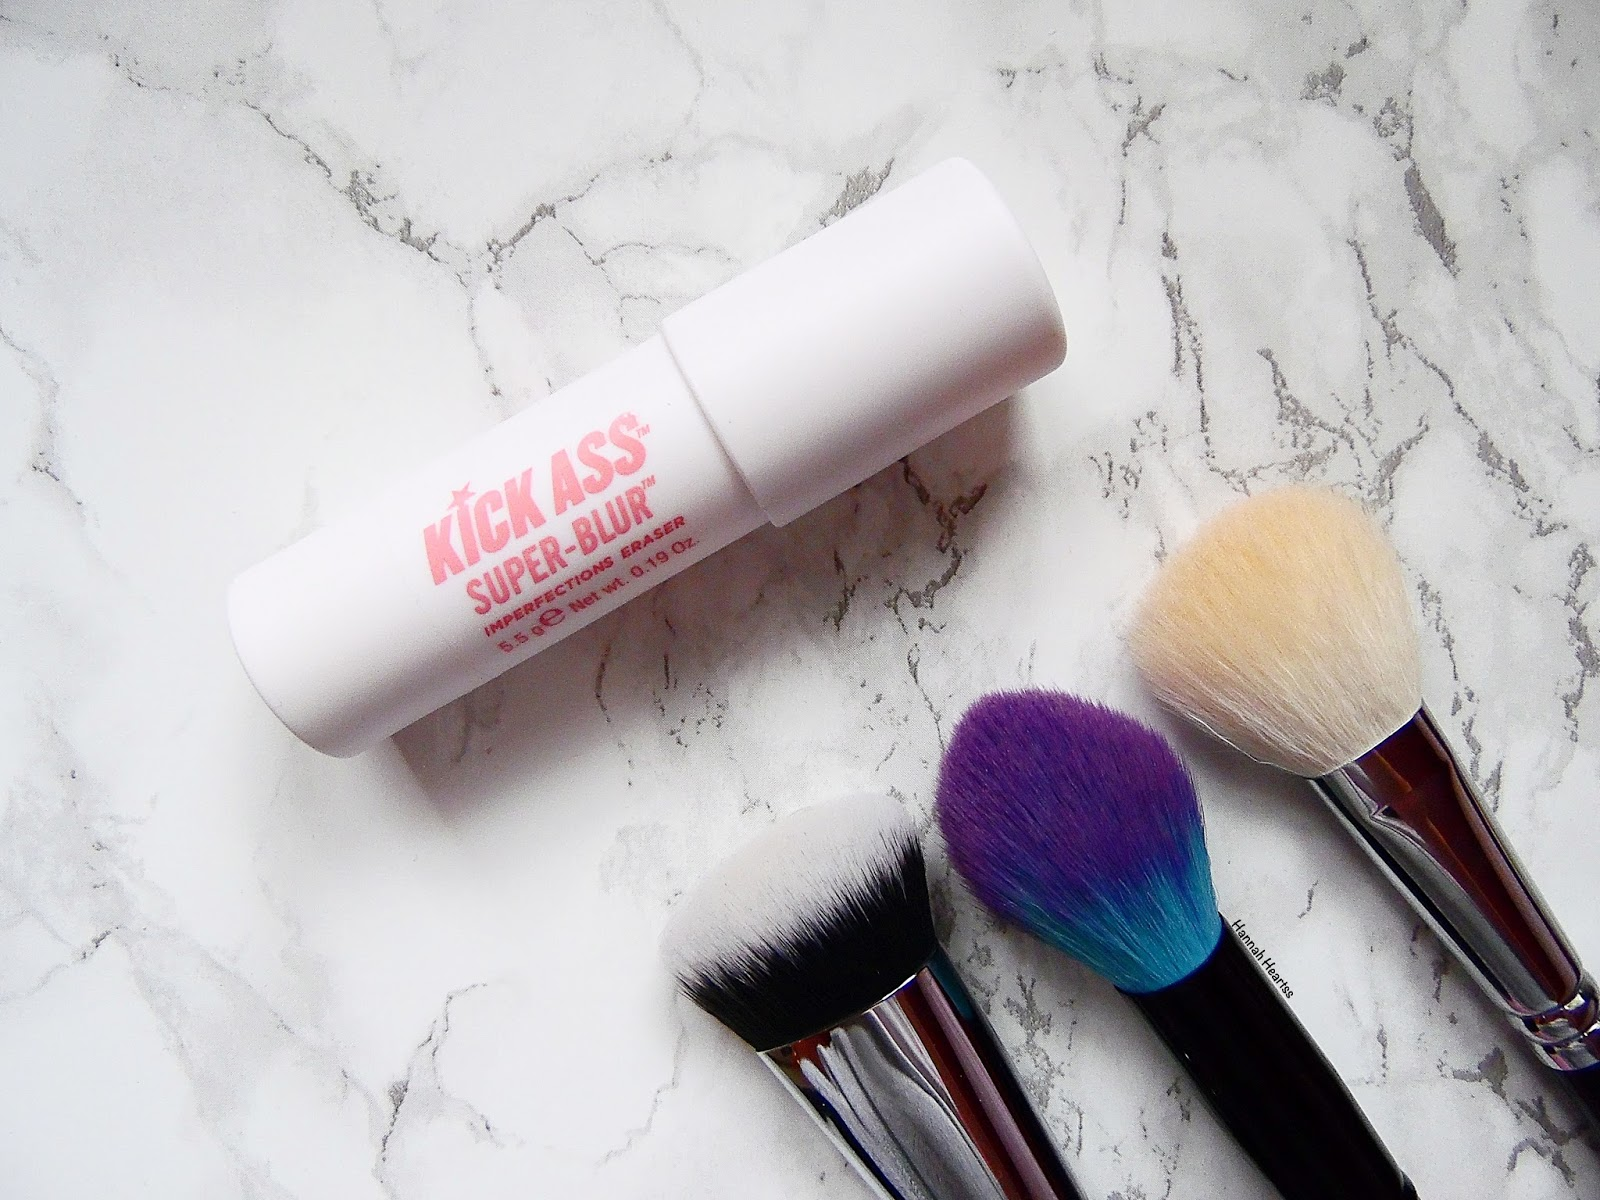 Soap and Glory Kick Ass Super-Blur Stick